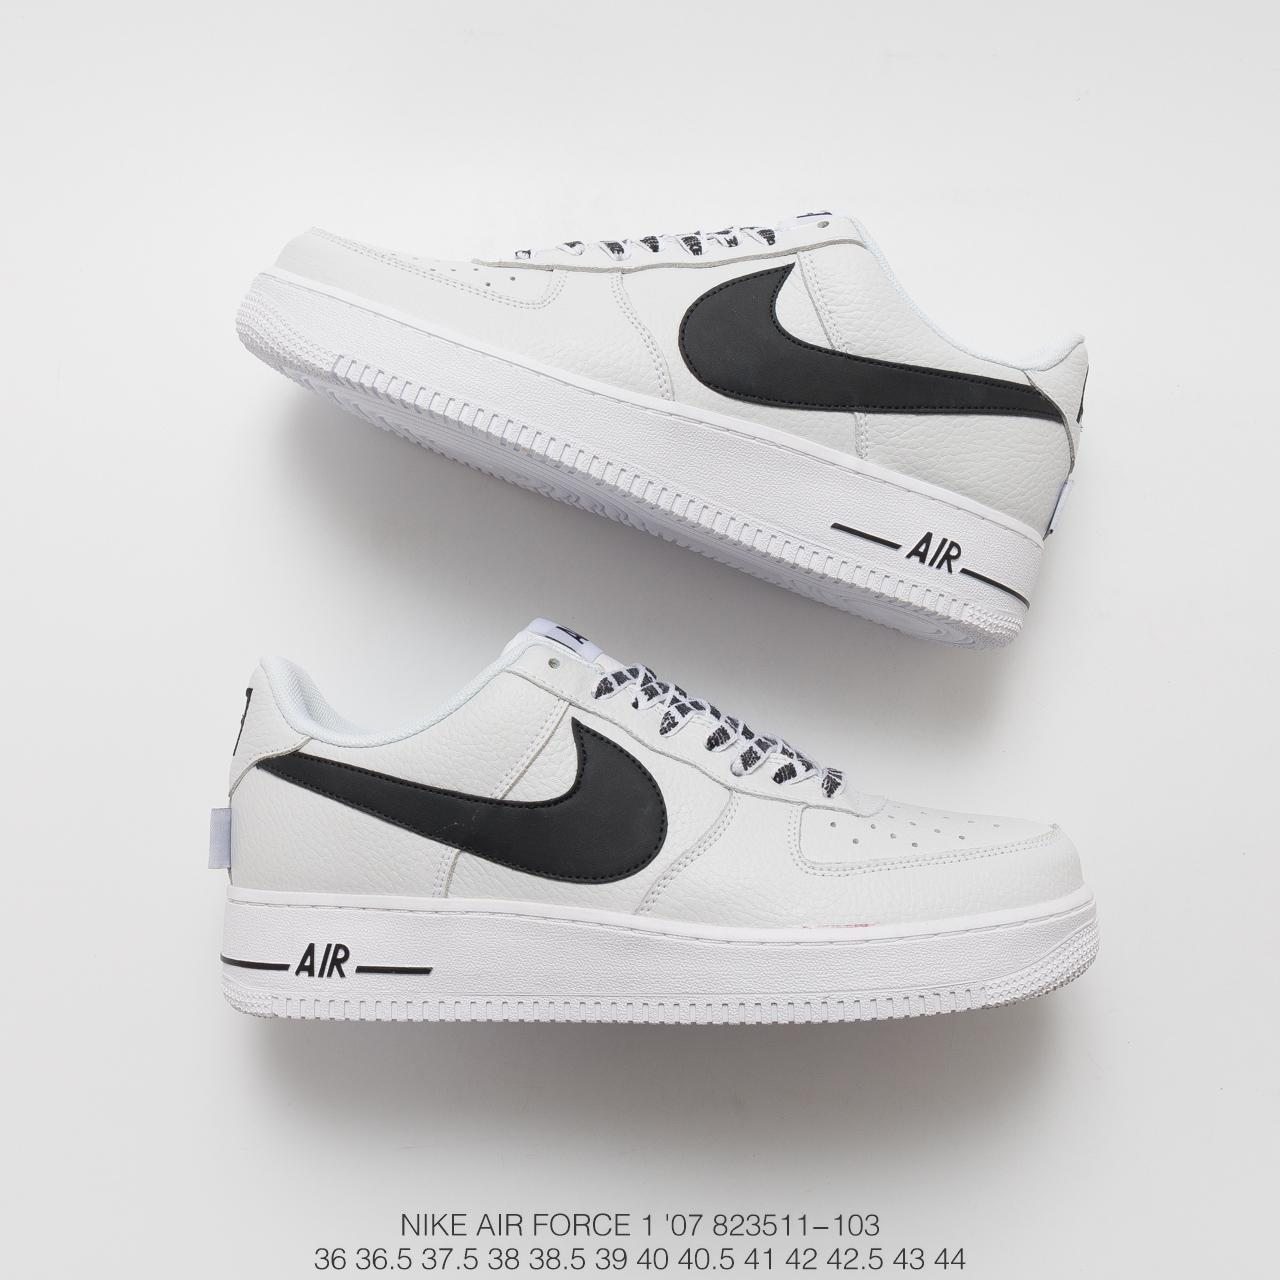 Nike Products Accessories At Best Price In Malaysia Lazada Kaos Pria Pullampampbear Shirt Black Grey Air Force 1 07 Lv8 Nba Women And Men Athletic Shoes 823511 103